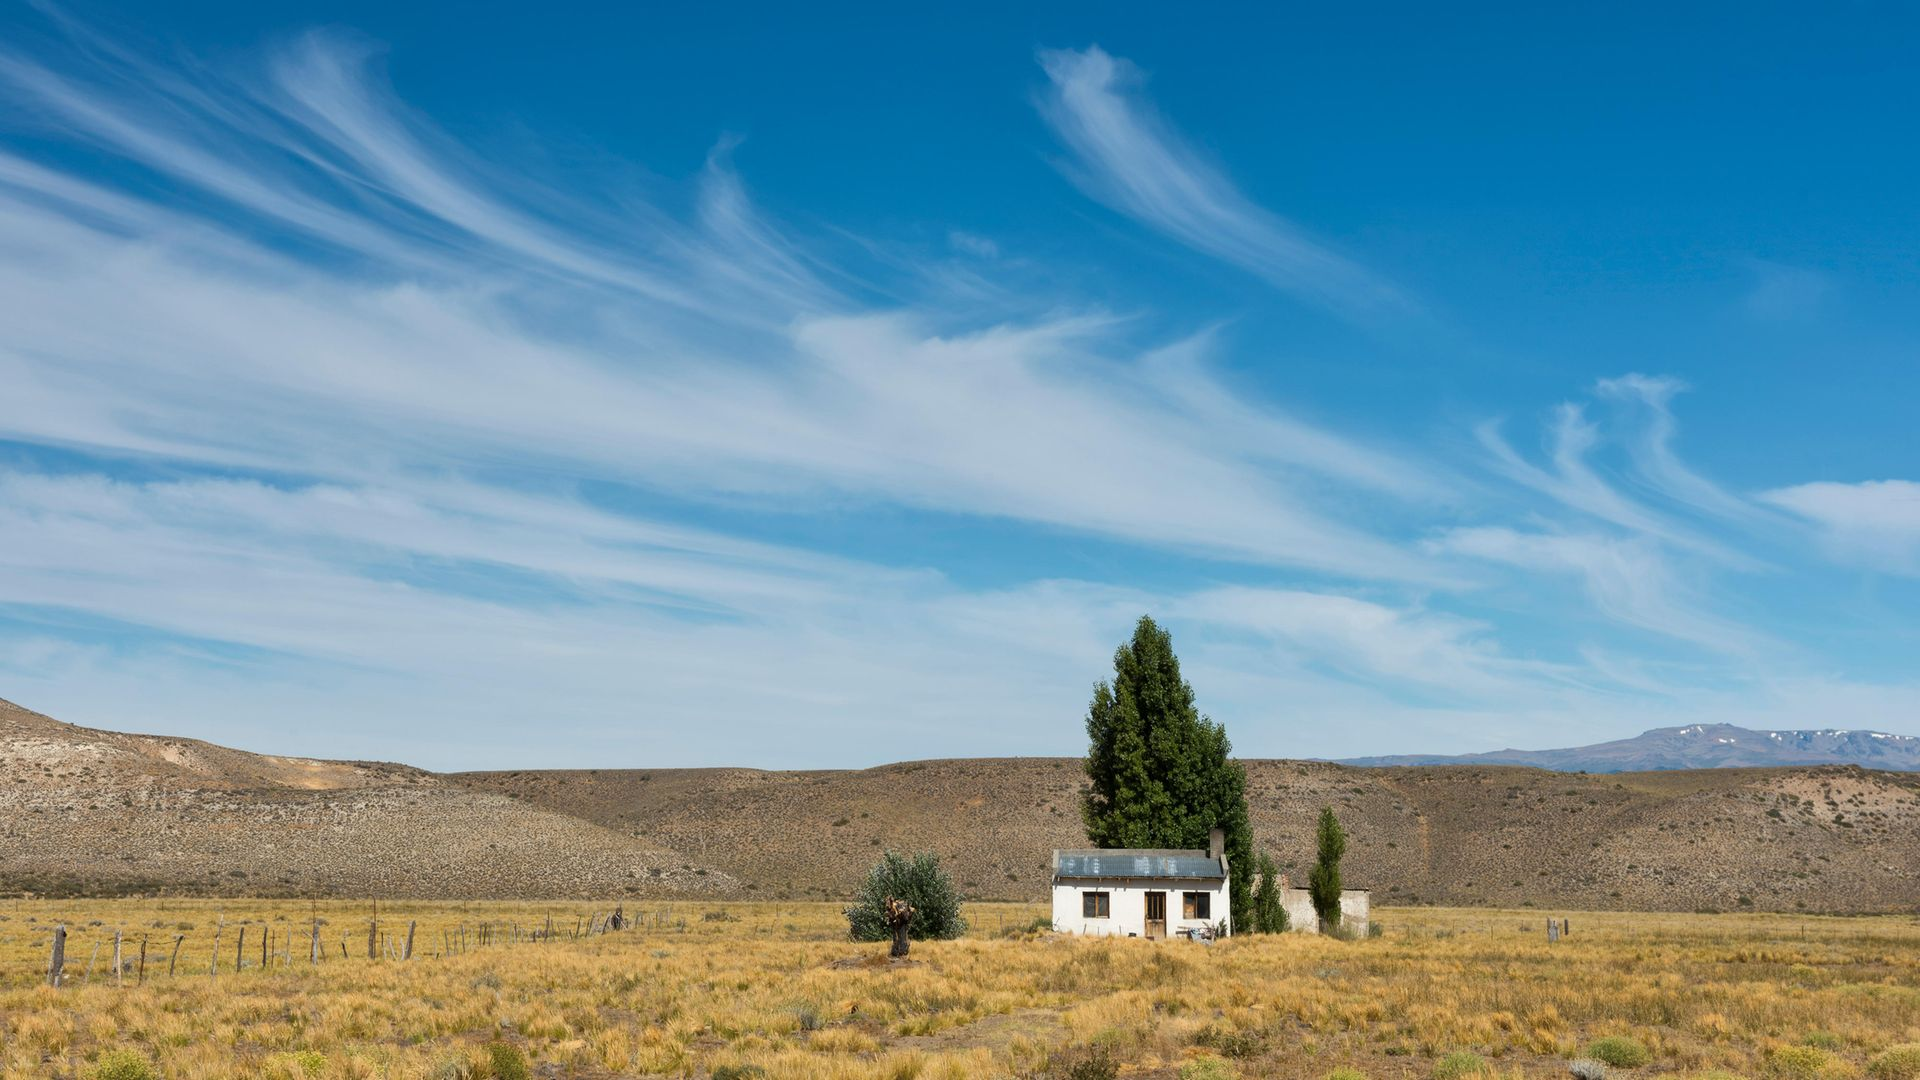 A house in the Pampas lowlands of Chubut, in Argentina - Credit: Universal Images Group via Getty